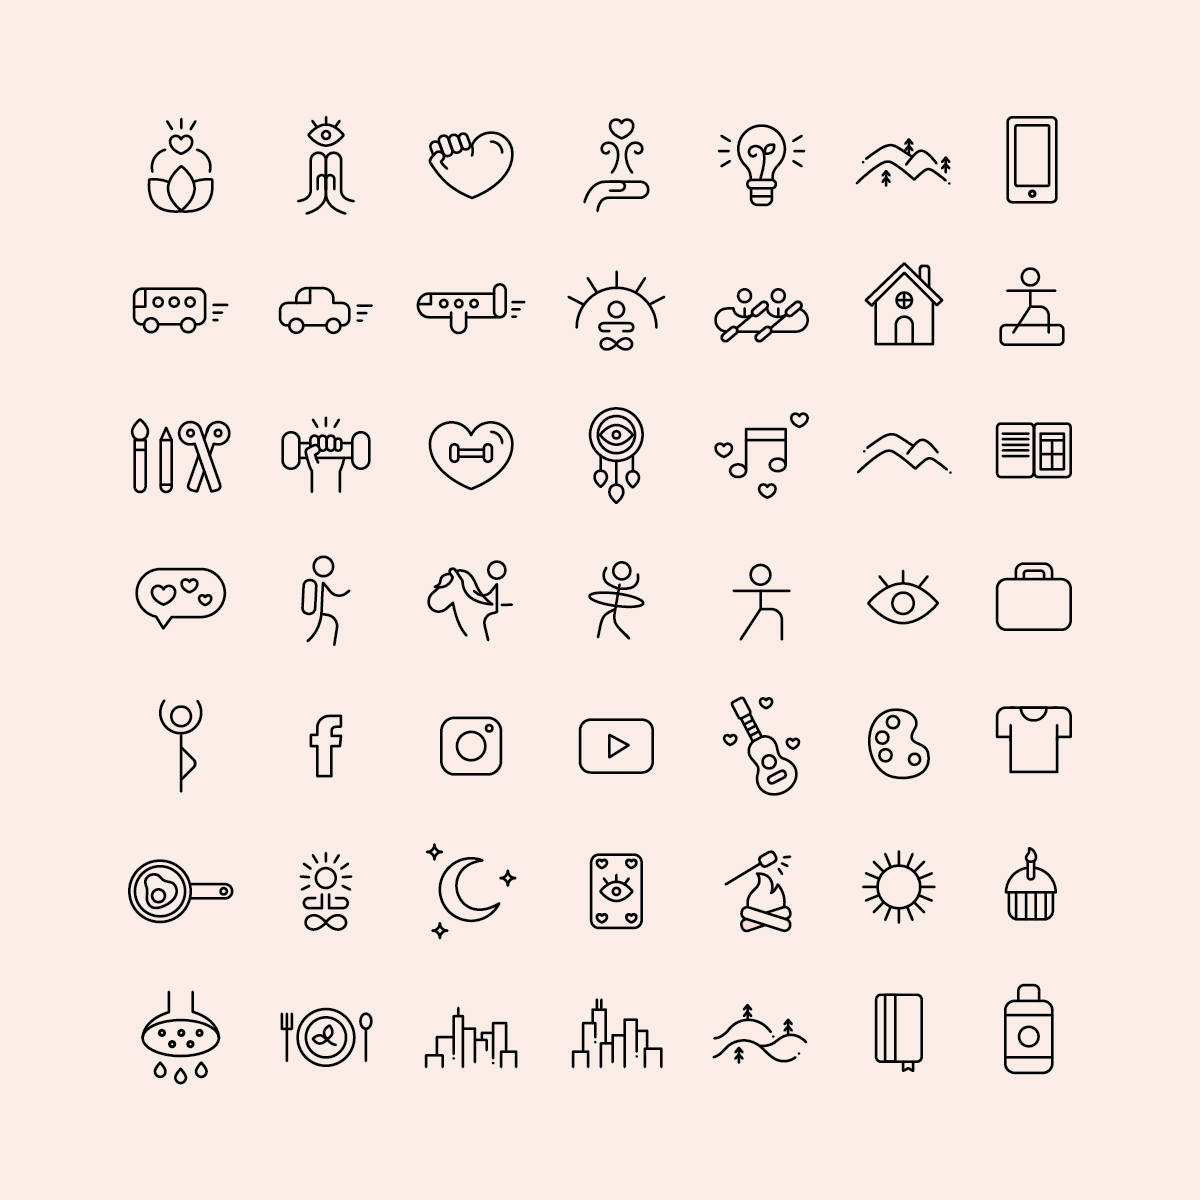 cad_sc_icons.png